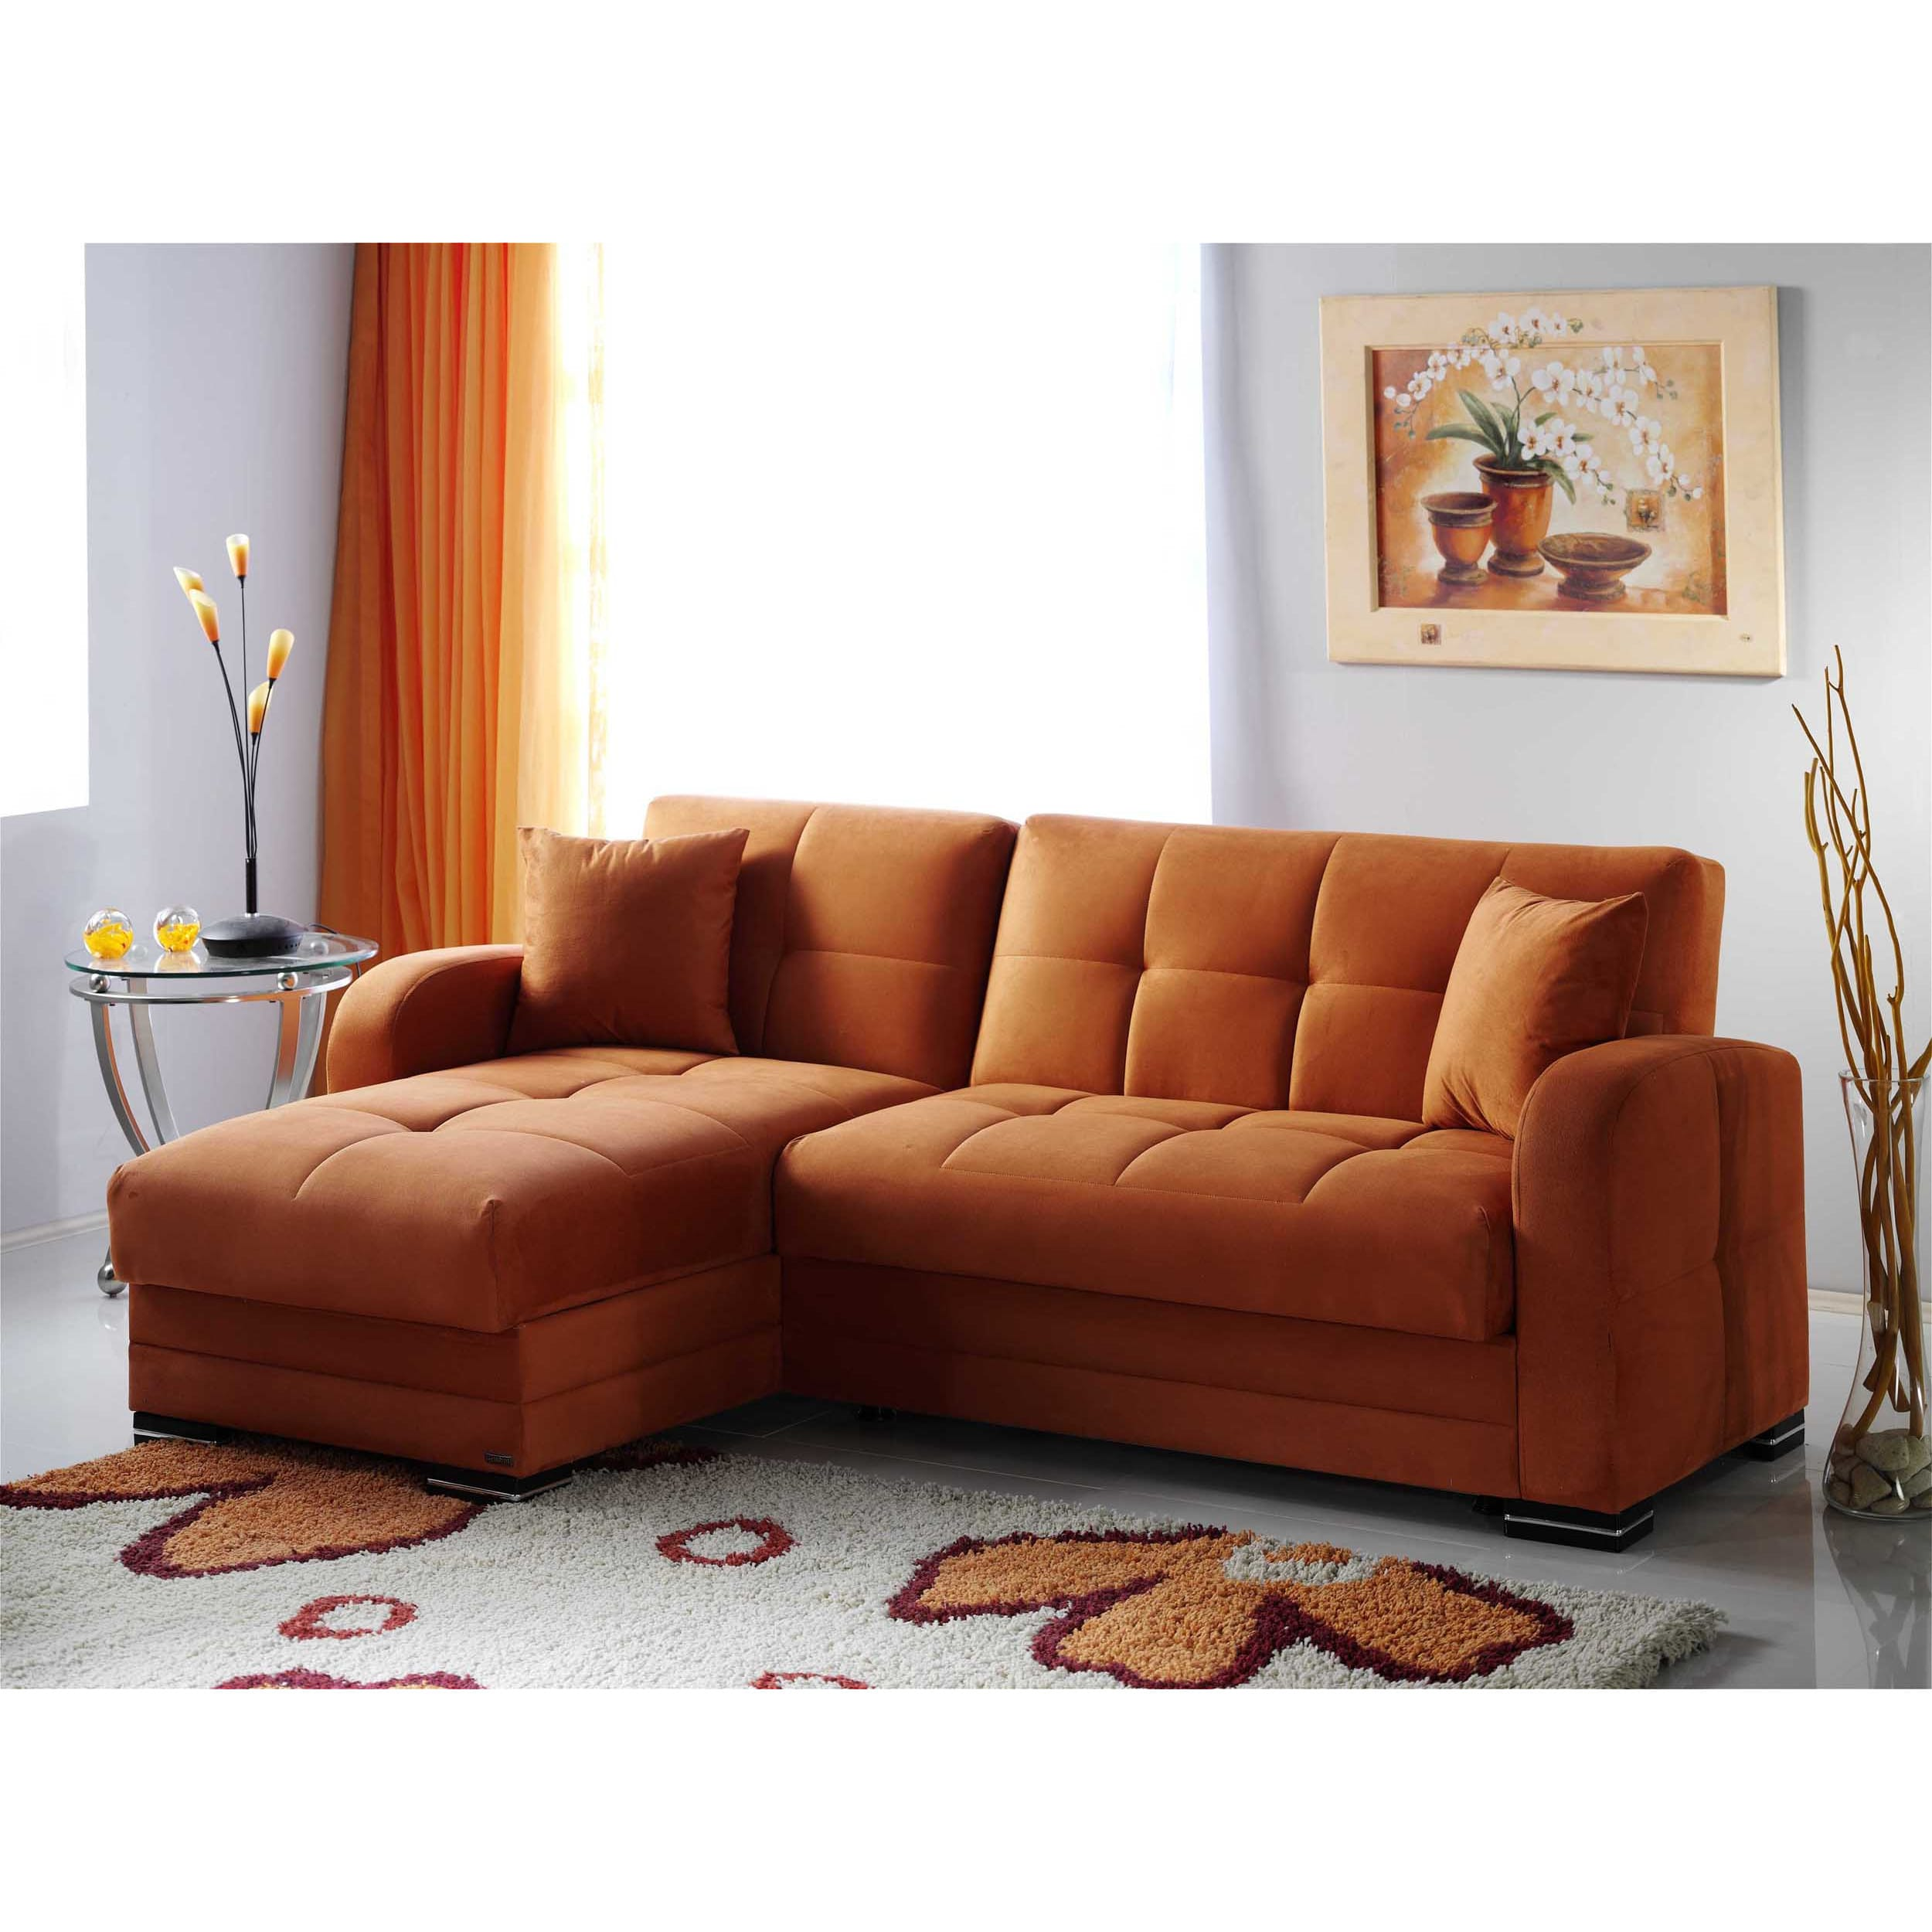 kubo rainbow orange sectional sofa by istikbal sunset. Black Bedroom Furniture Sets. Home Design Ideas